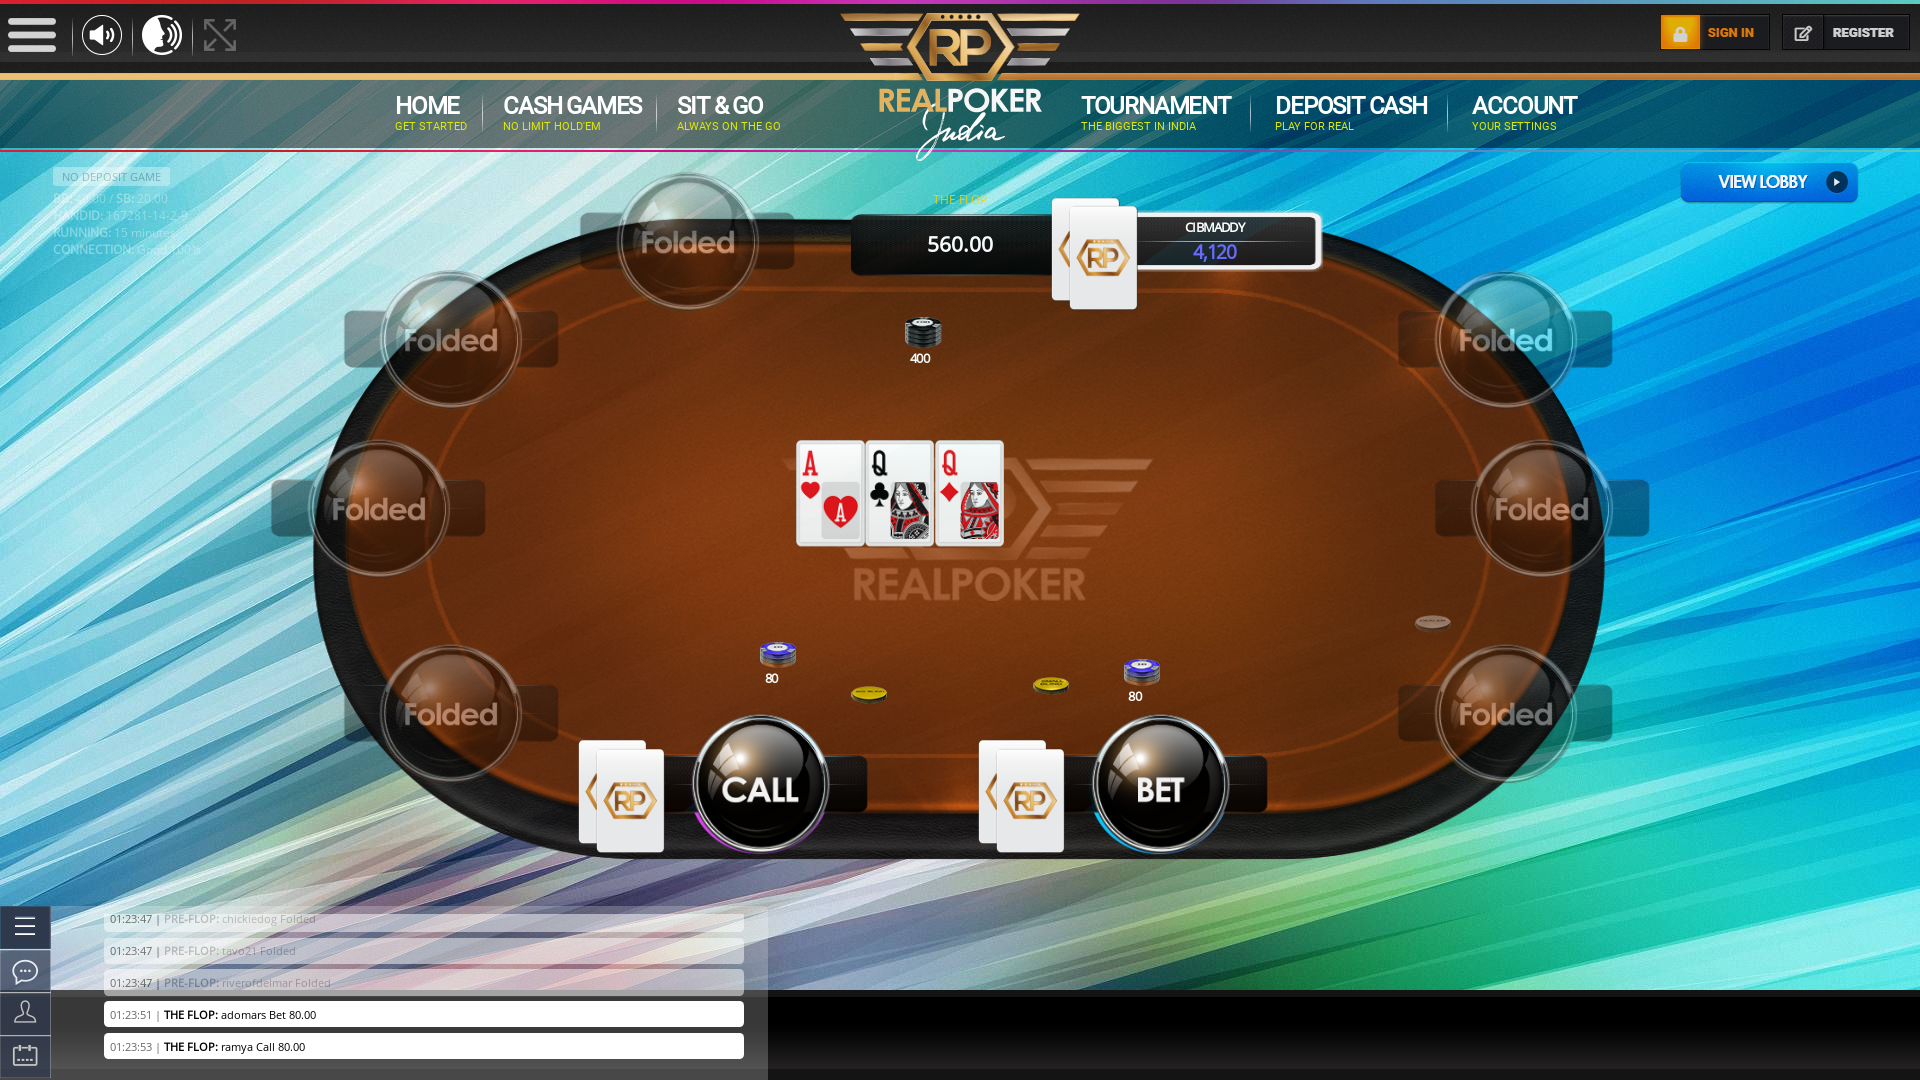 Bambolim Online Poker 10 Player